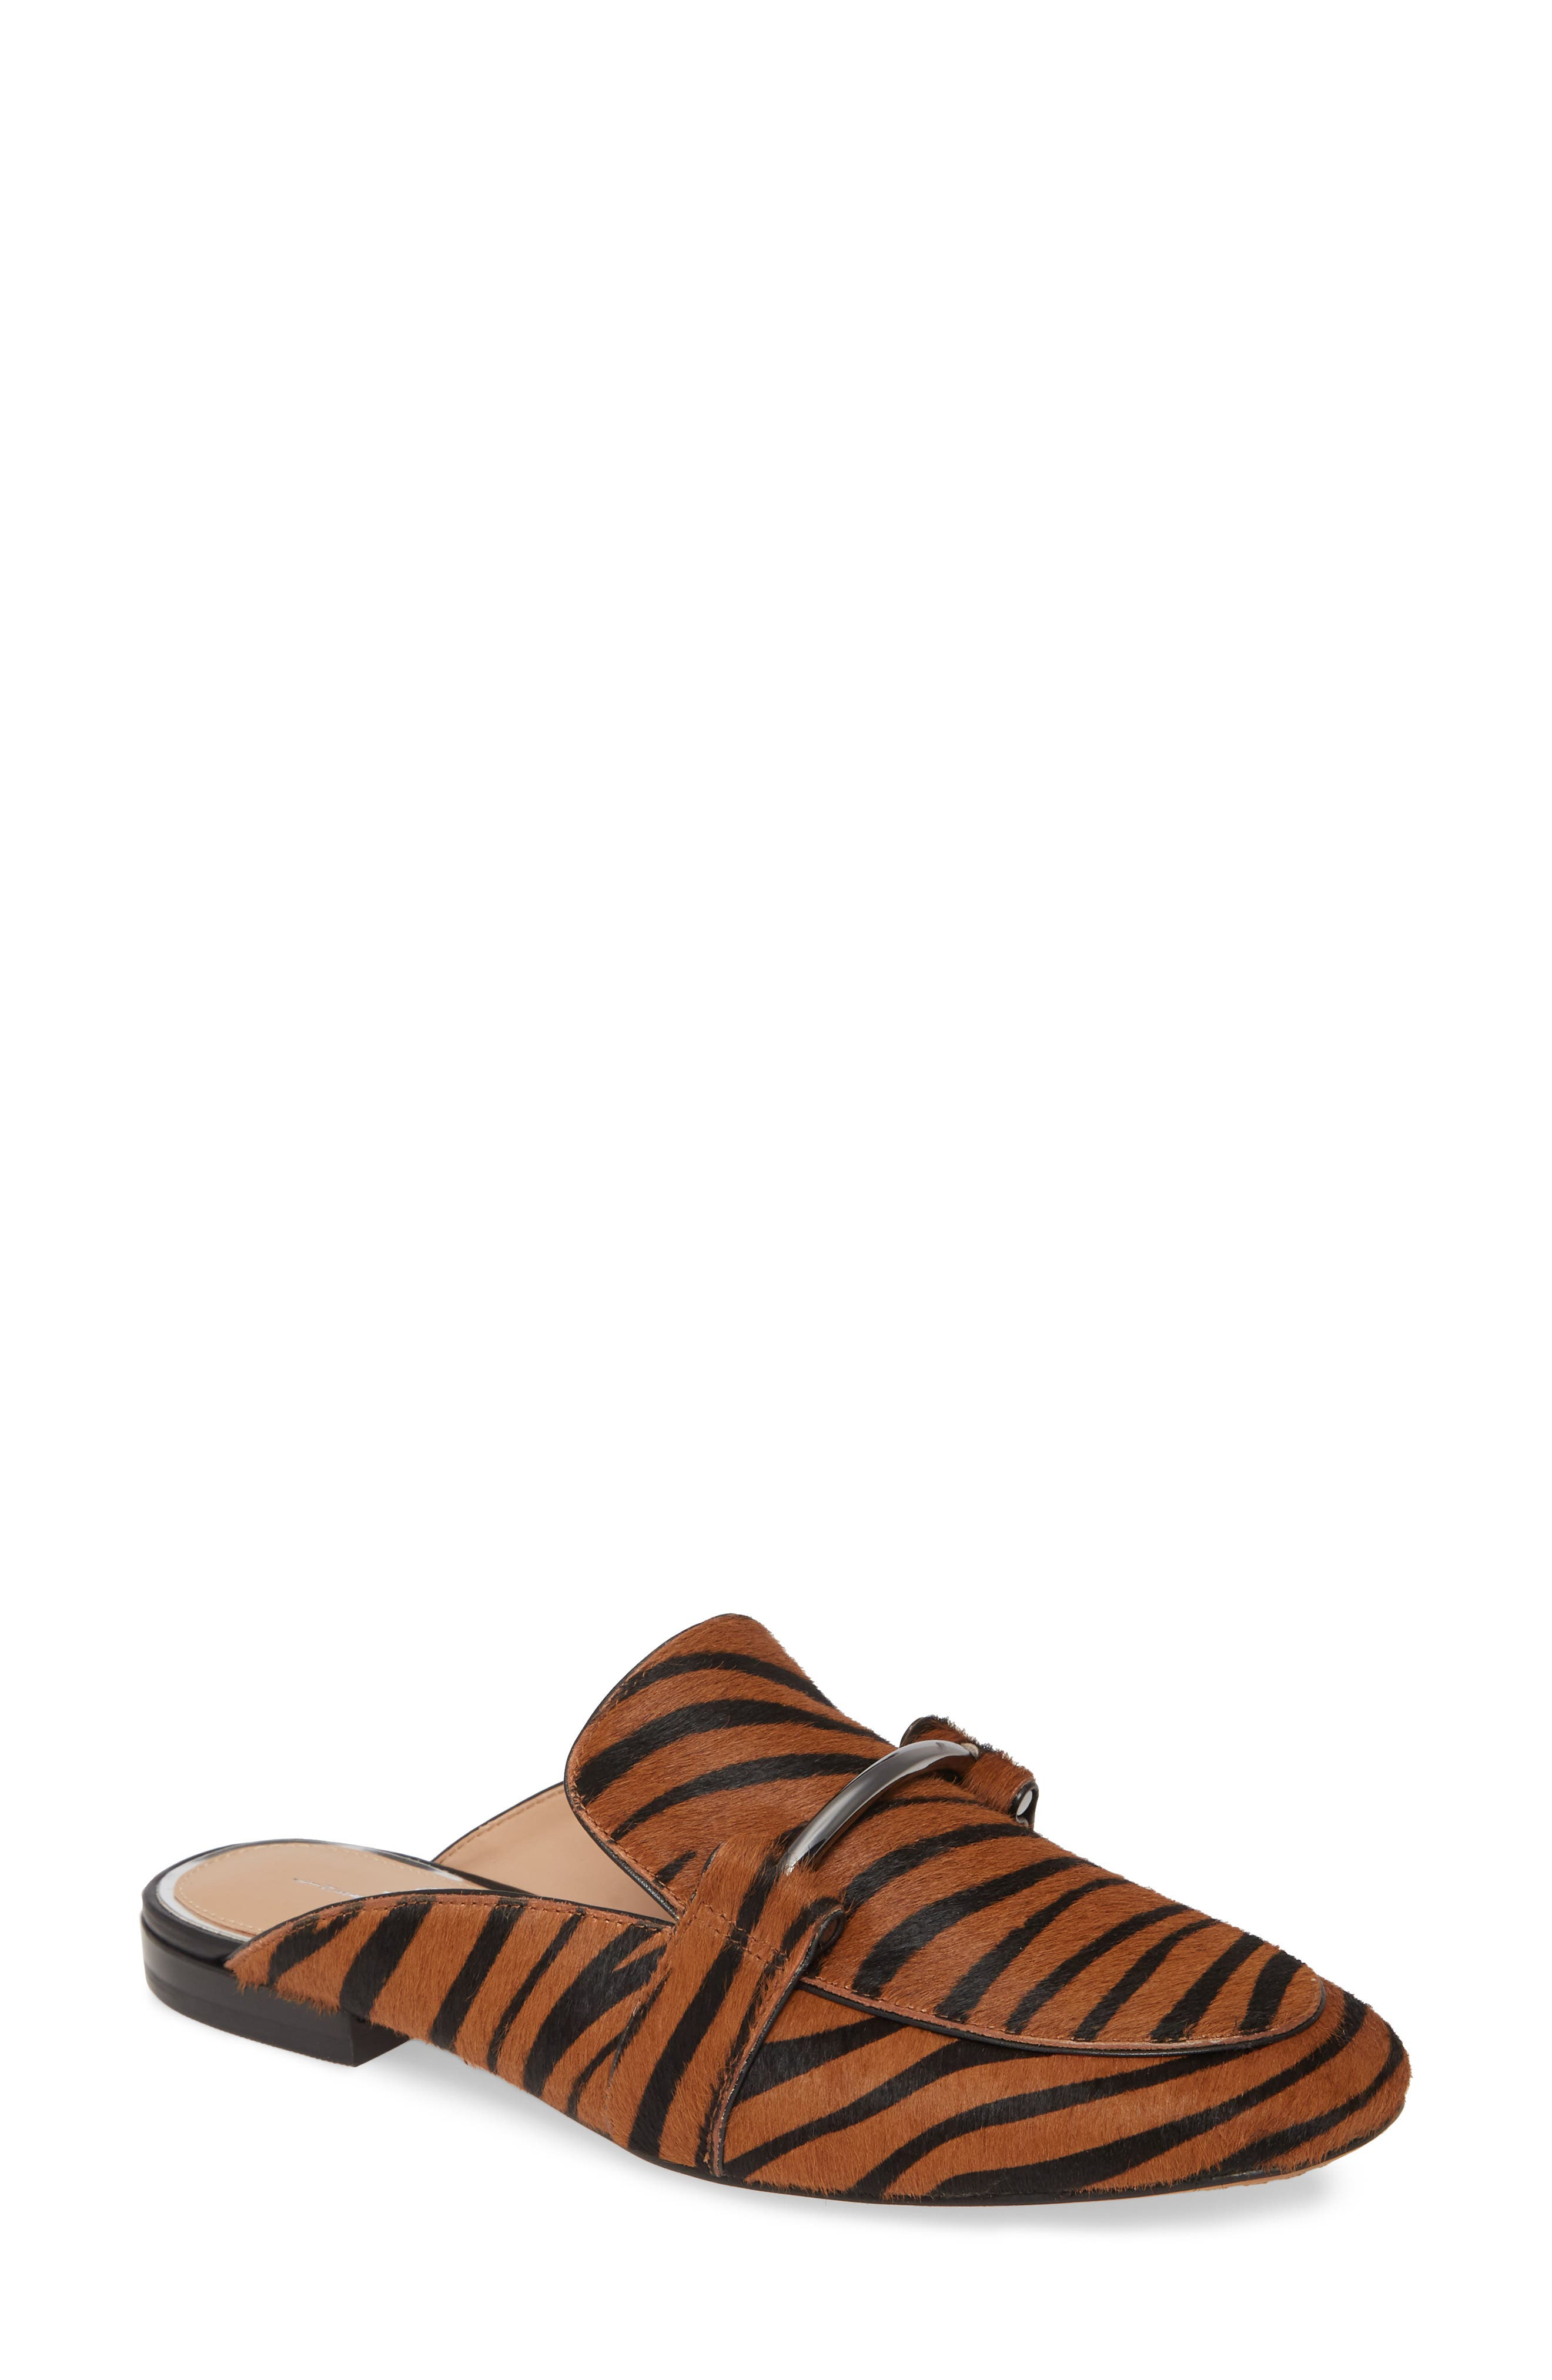 Linea Paolo Annette Genuine Calf Hair Loafer Mule, Brown